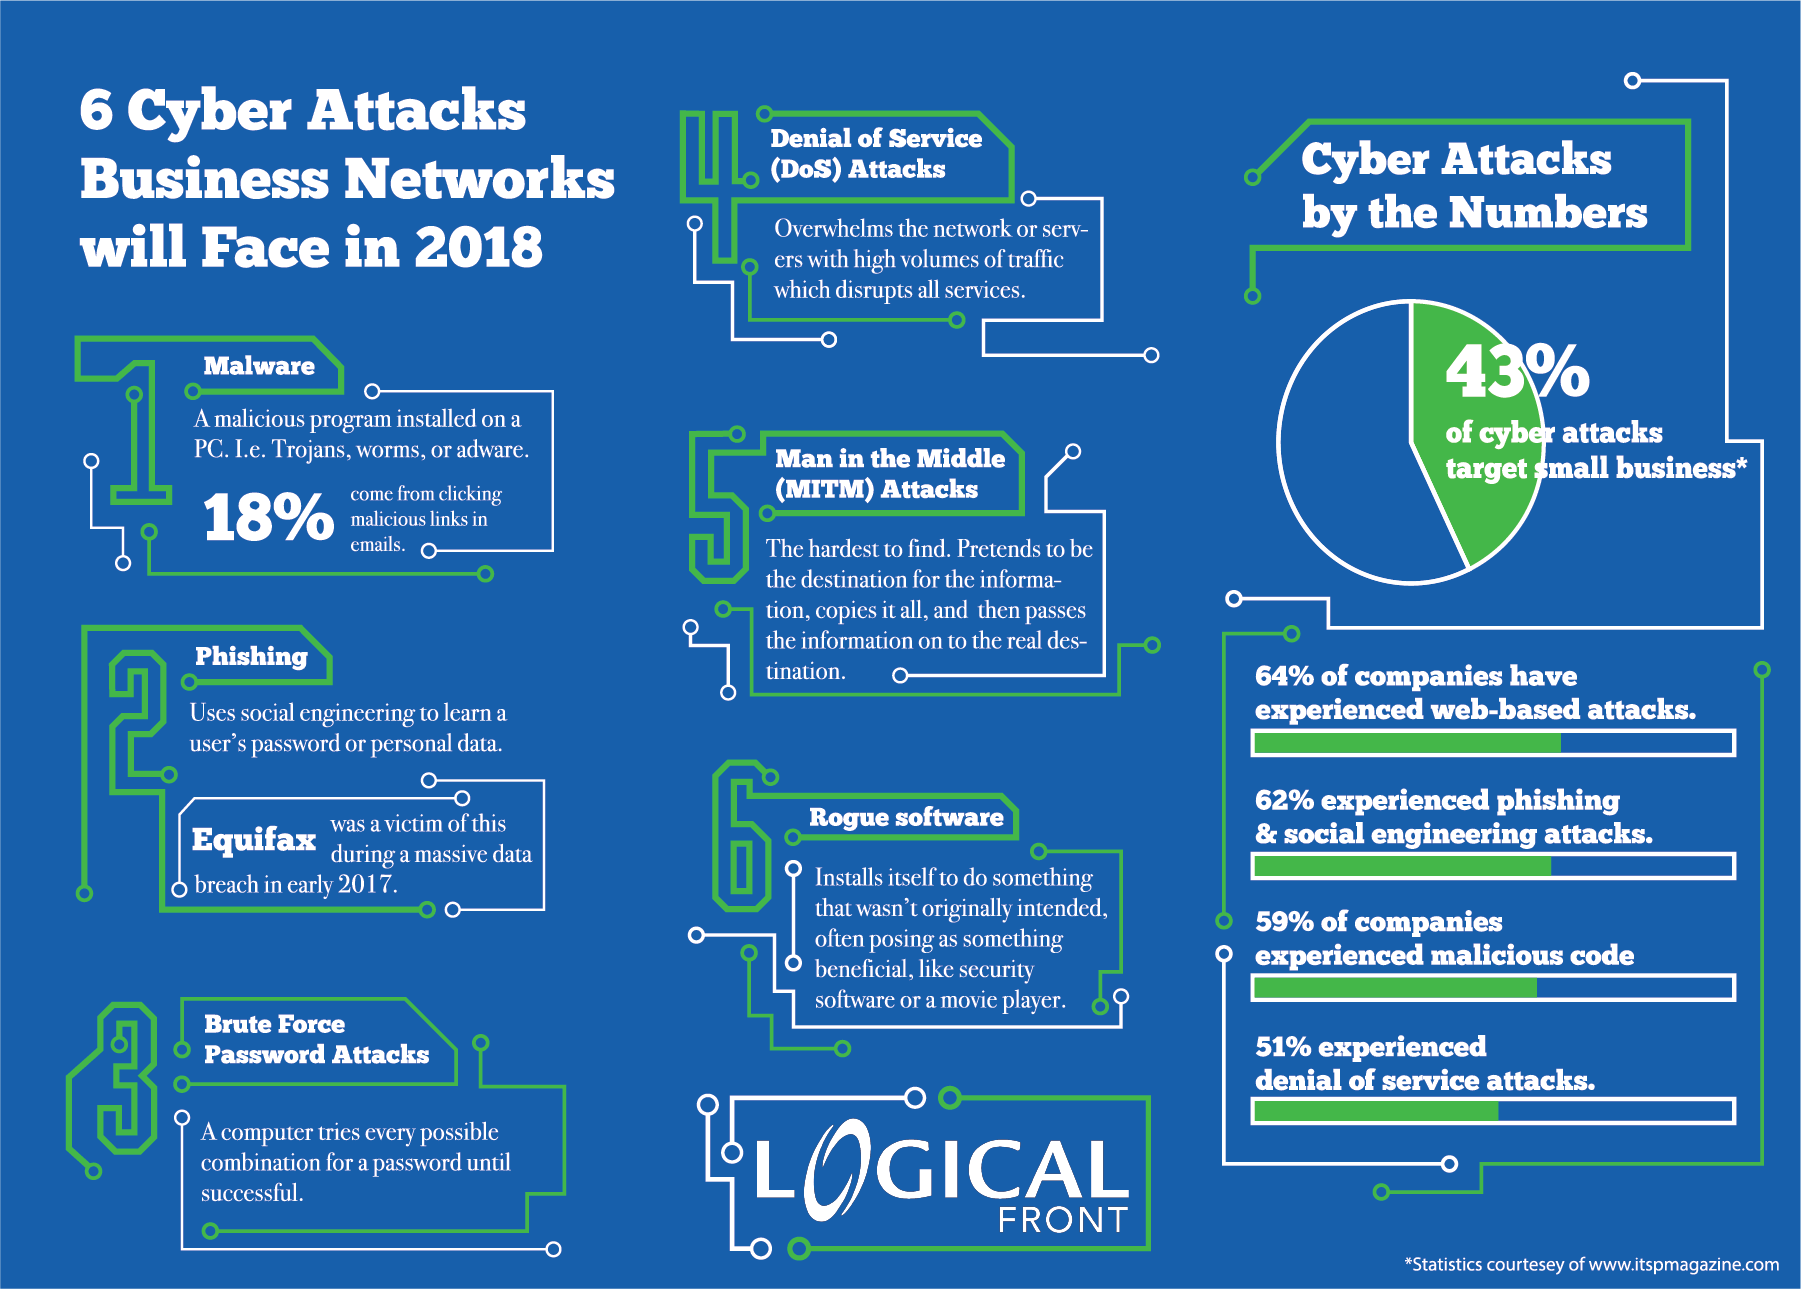 Cyber attacks come in many forms: DoS attacks, social engineering, brute force attacks, phishing, rogue software, and malware.